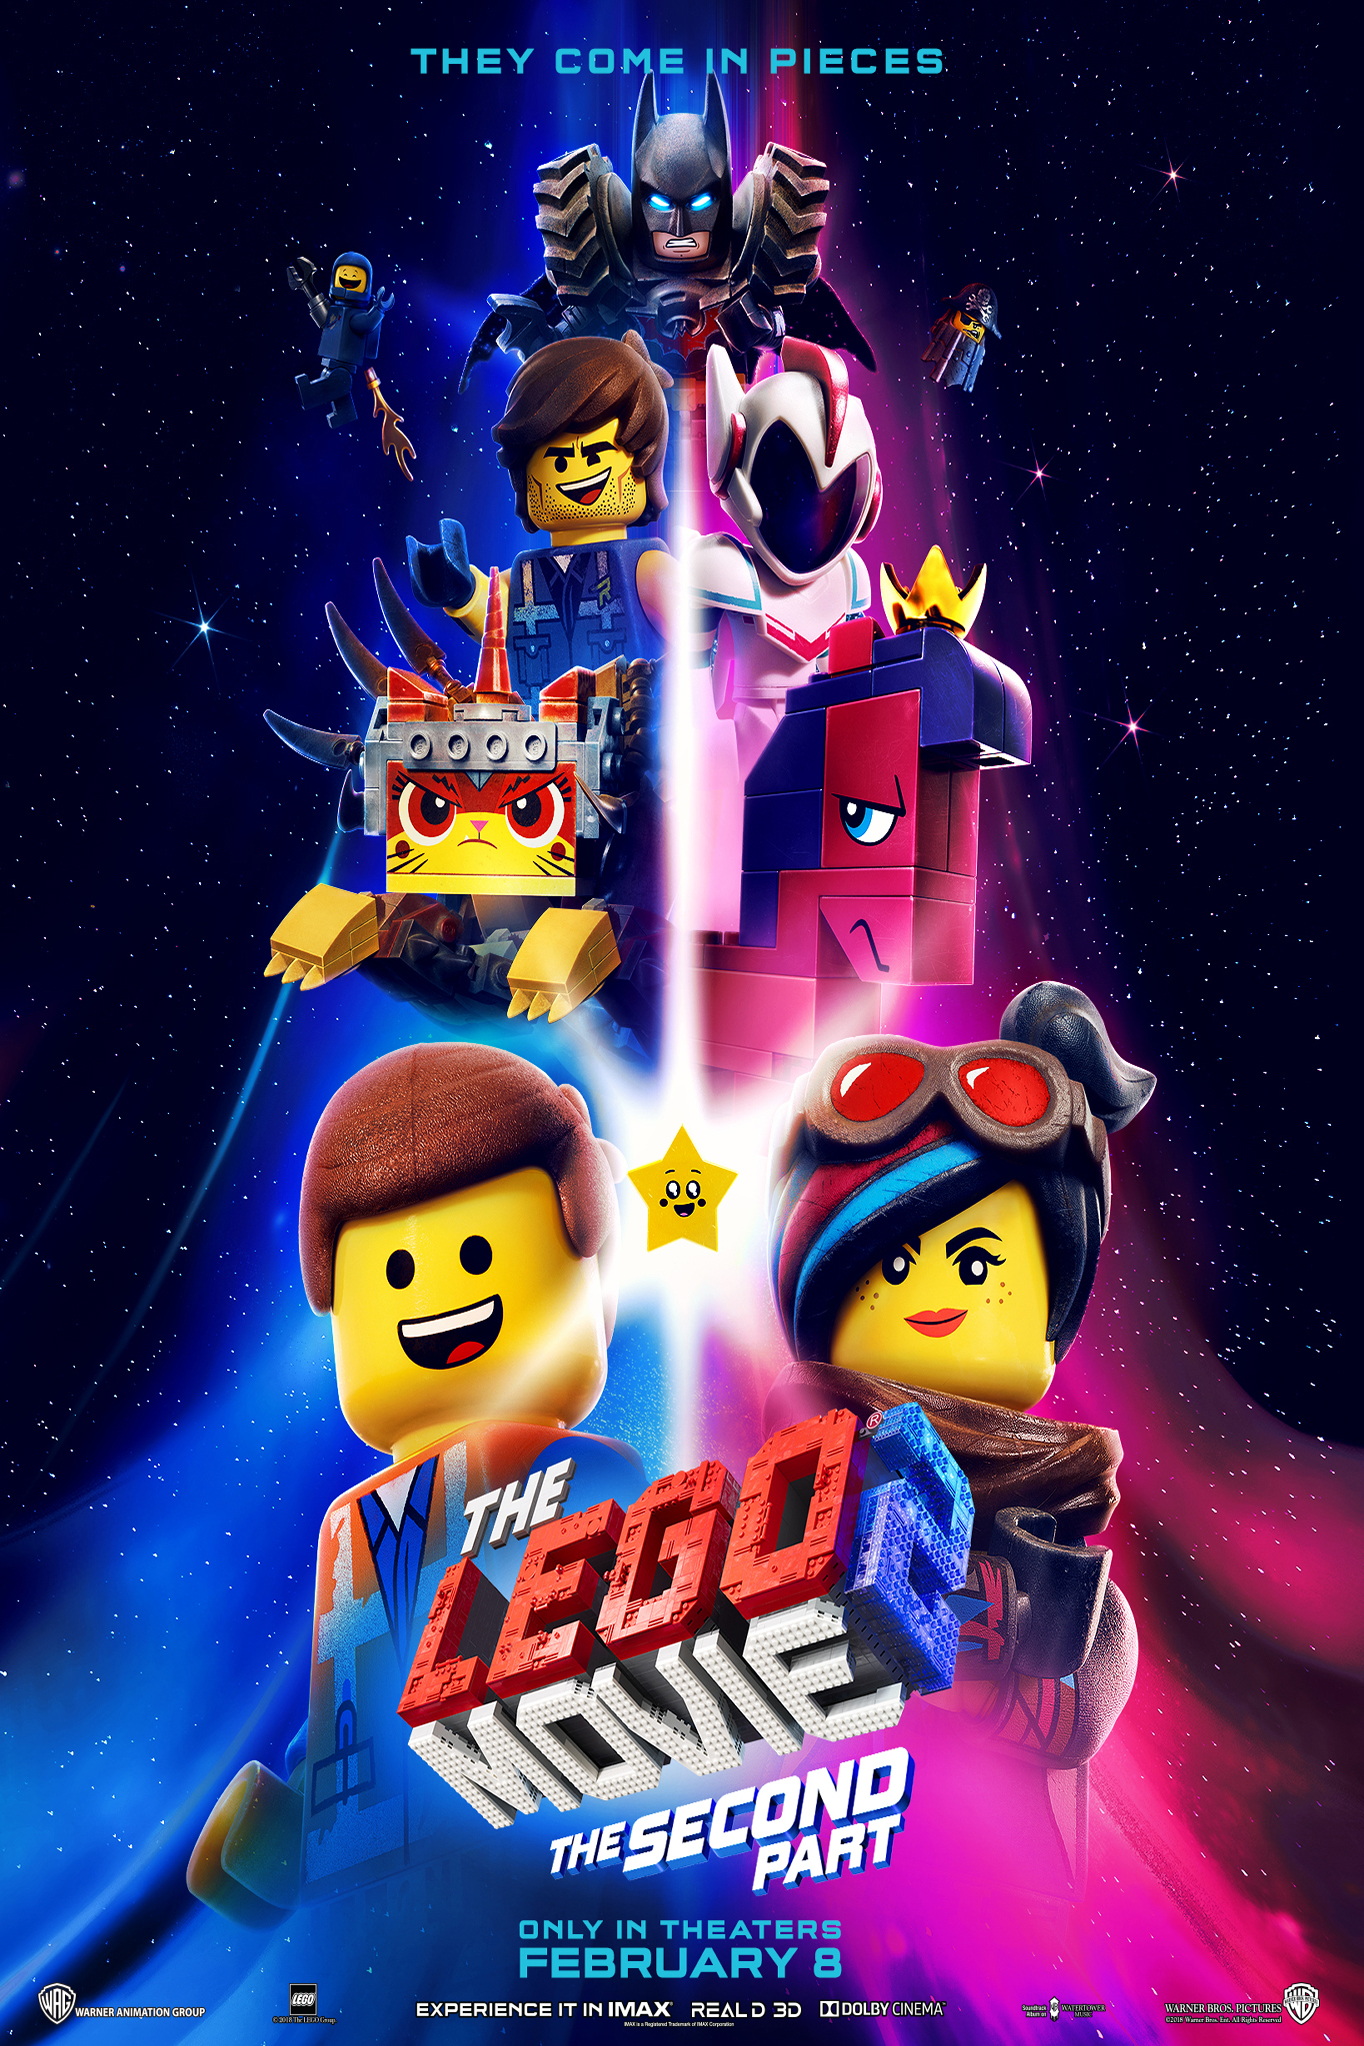 Poster for LEGO Movie 2: The Second Part, The